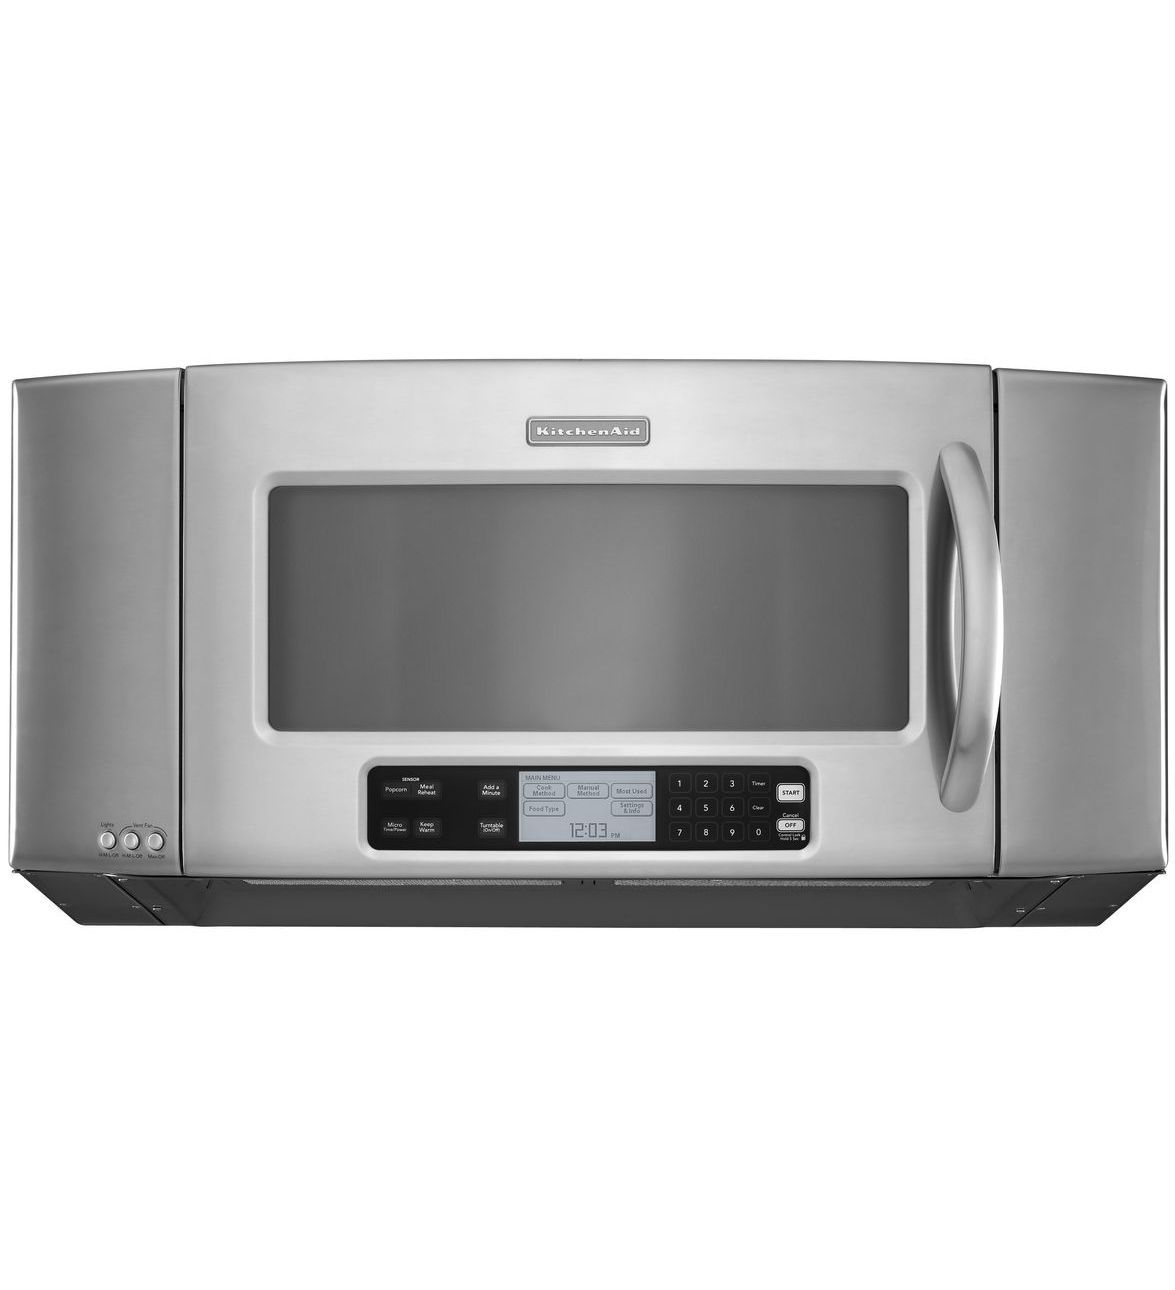 Kitchenaid 36 1200 Watt Microwave Hood Combination Oven Architect Series